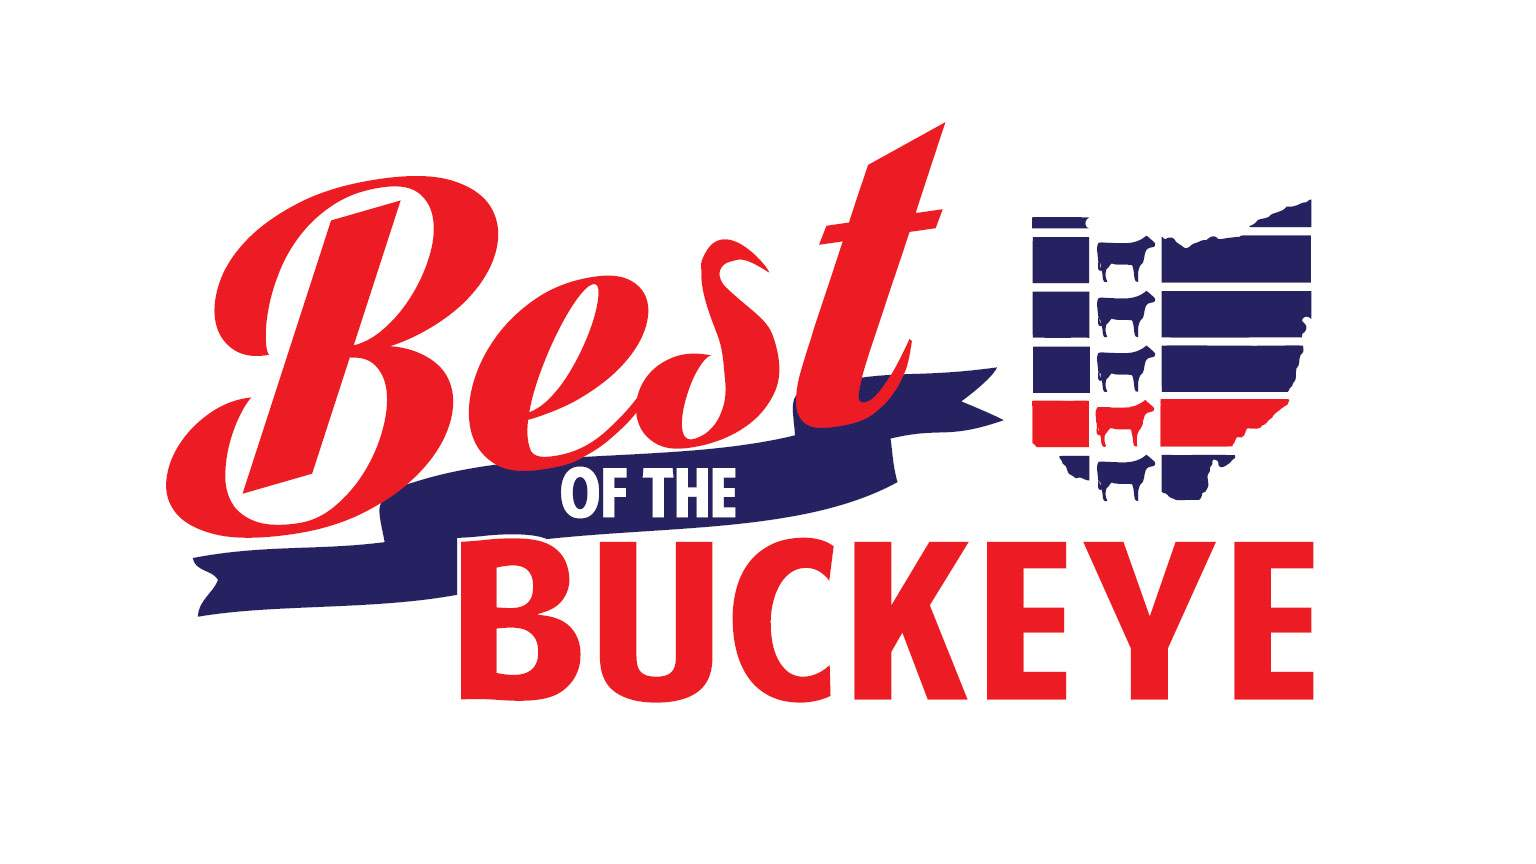 Ohio Cattlemen's Association Celebrates Best of the Buckeye Breeders